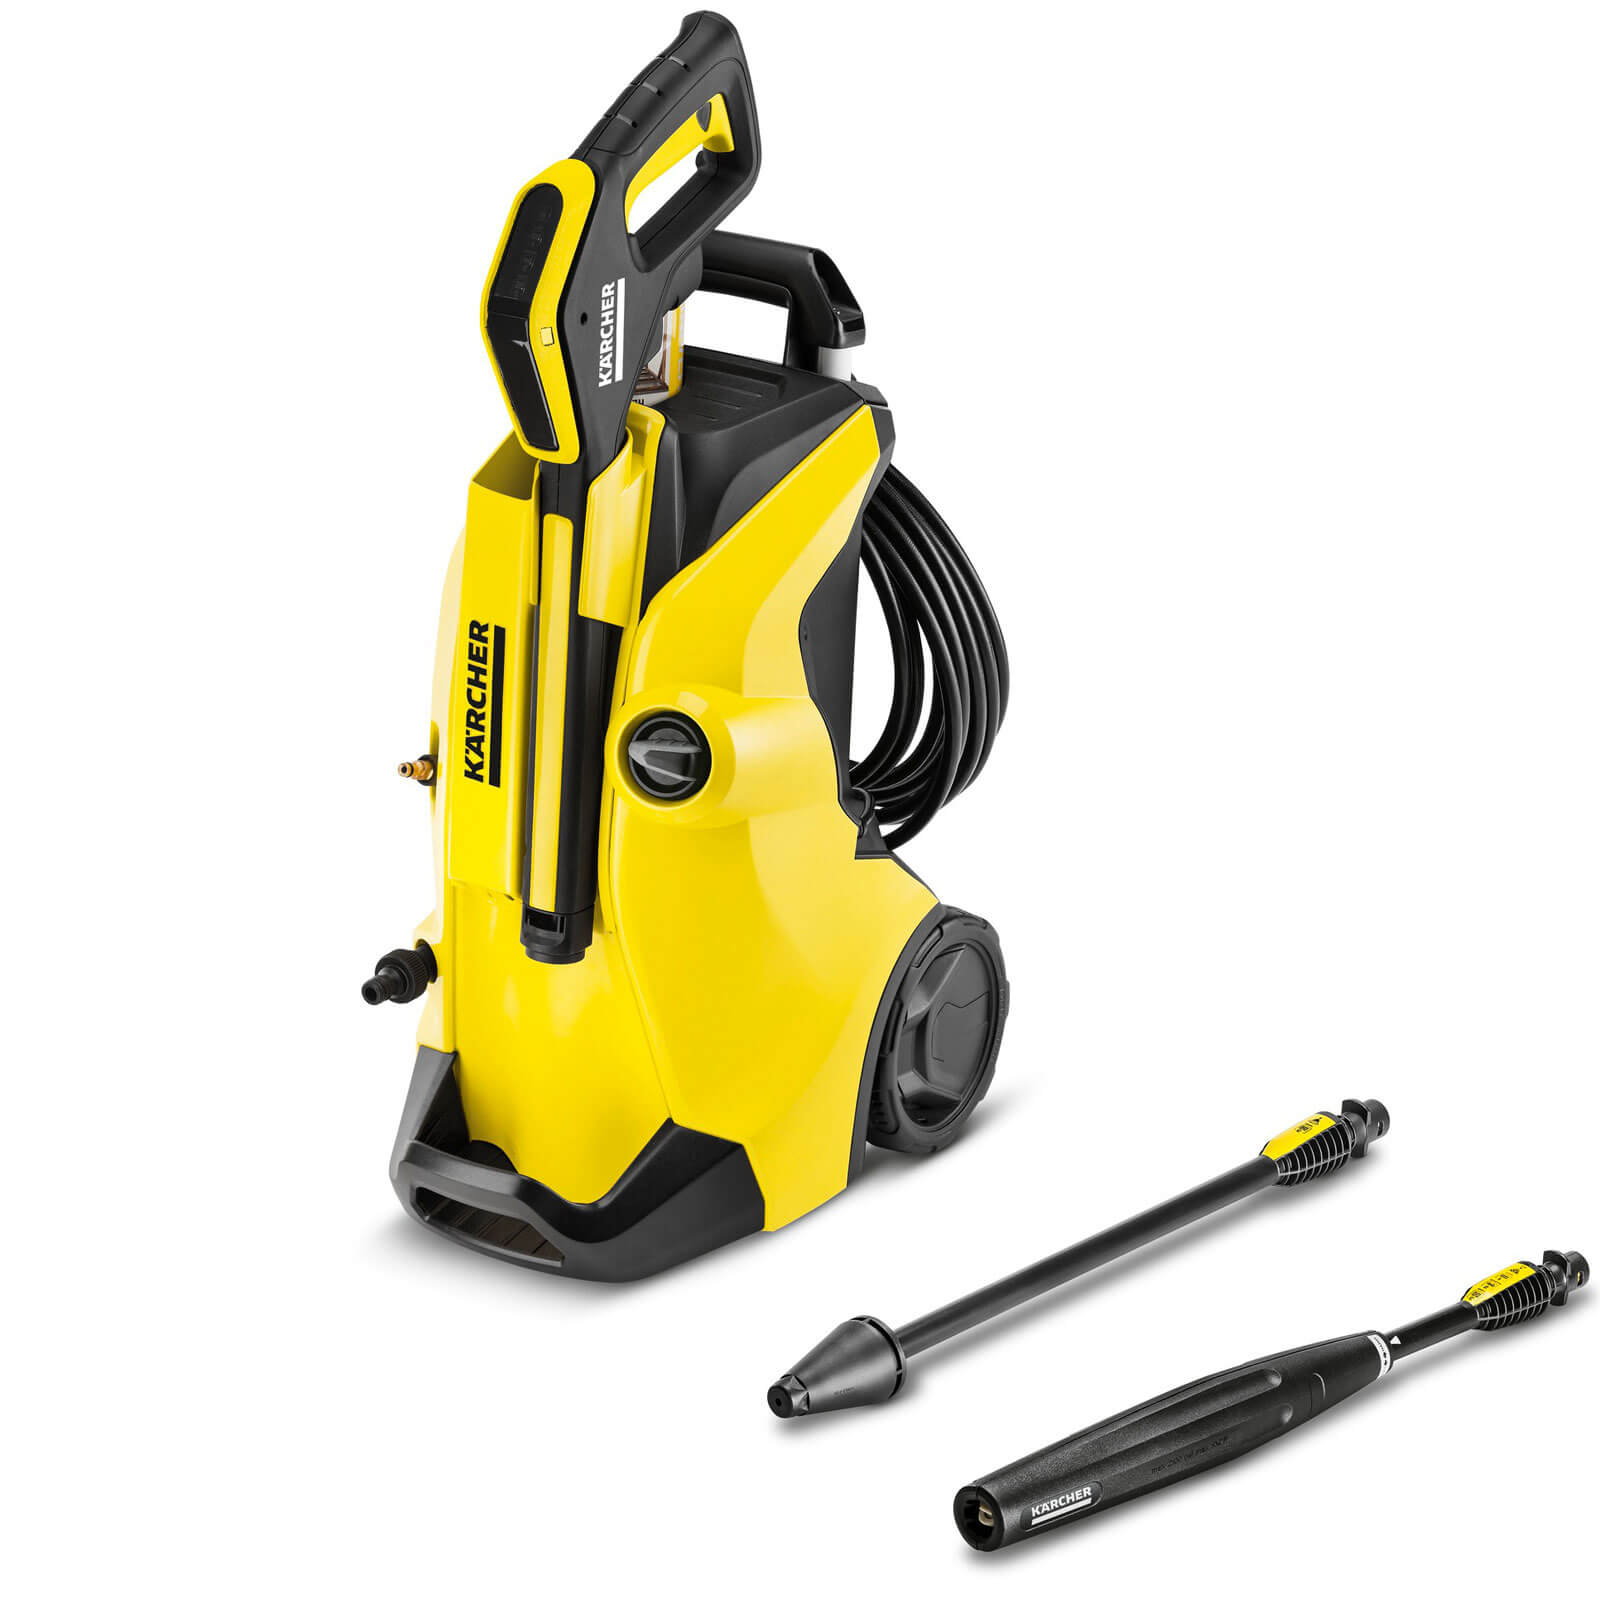 buy cheap karcher accessories compare garden tools prices for best uk deals. Black Bedroom Furniture Sets. Home Design Ideas